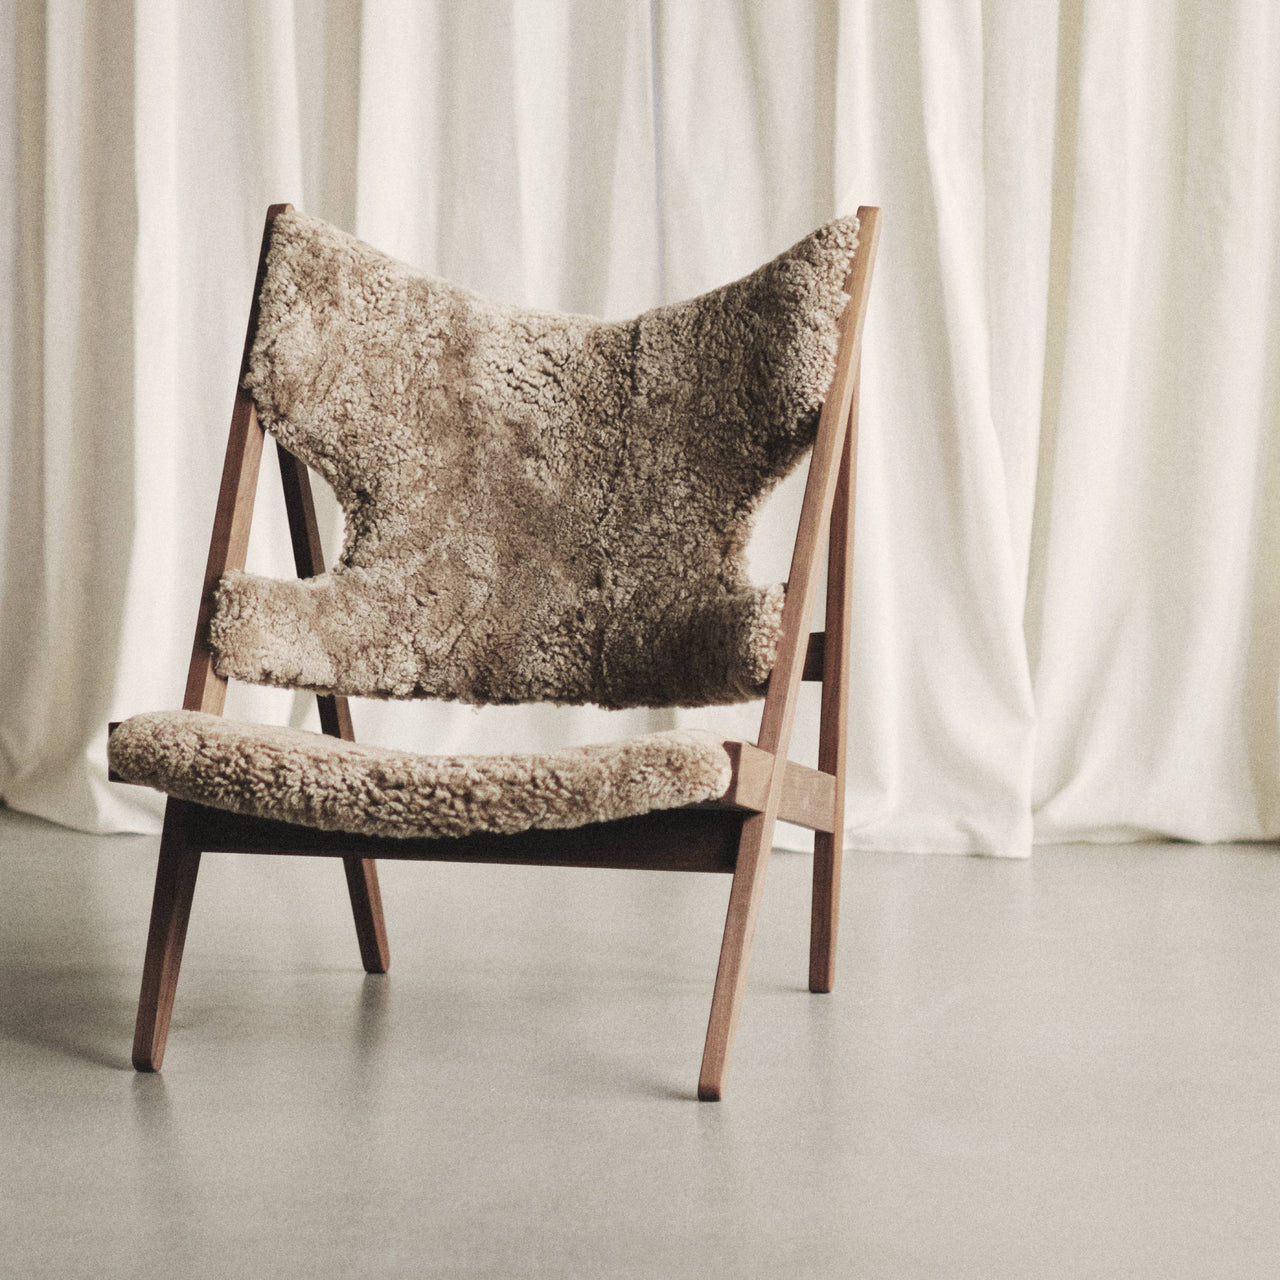 Knitting Lounge Chair